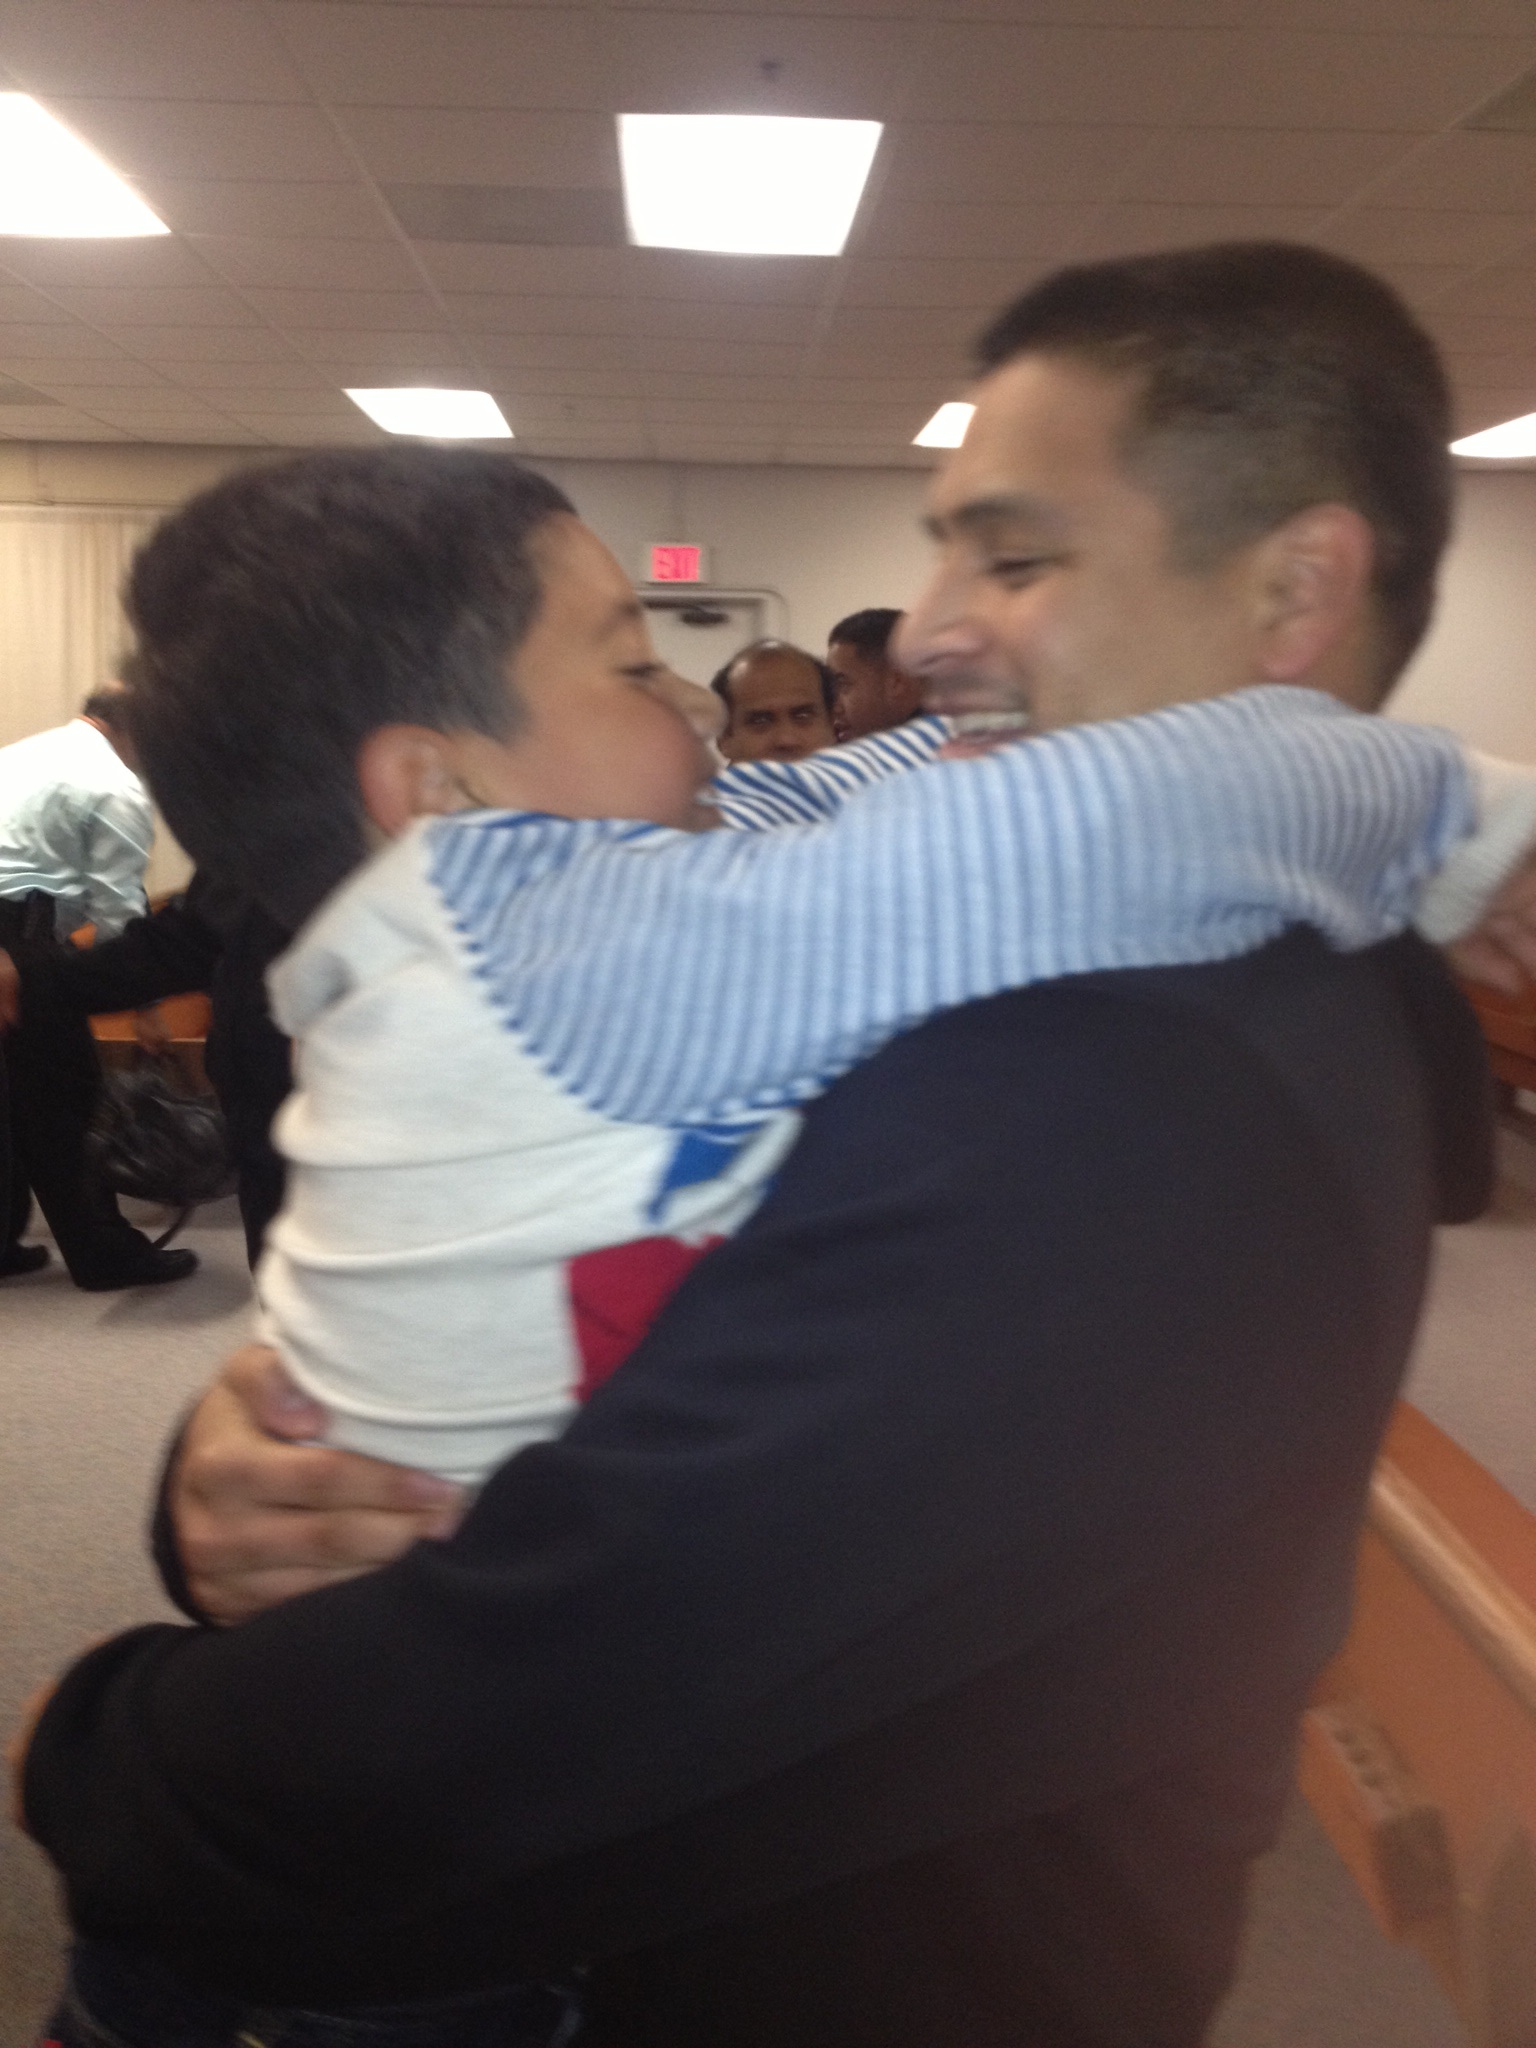 Jesus embracing his nephew tonight at Church in San Jose after his release.